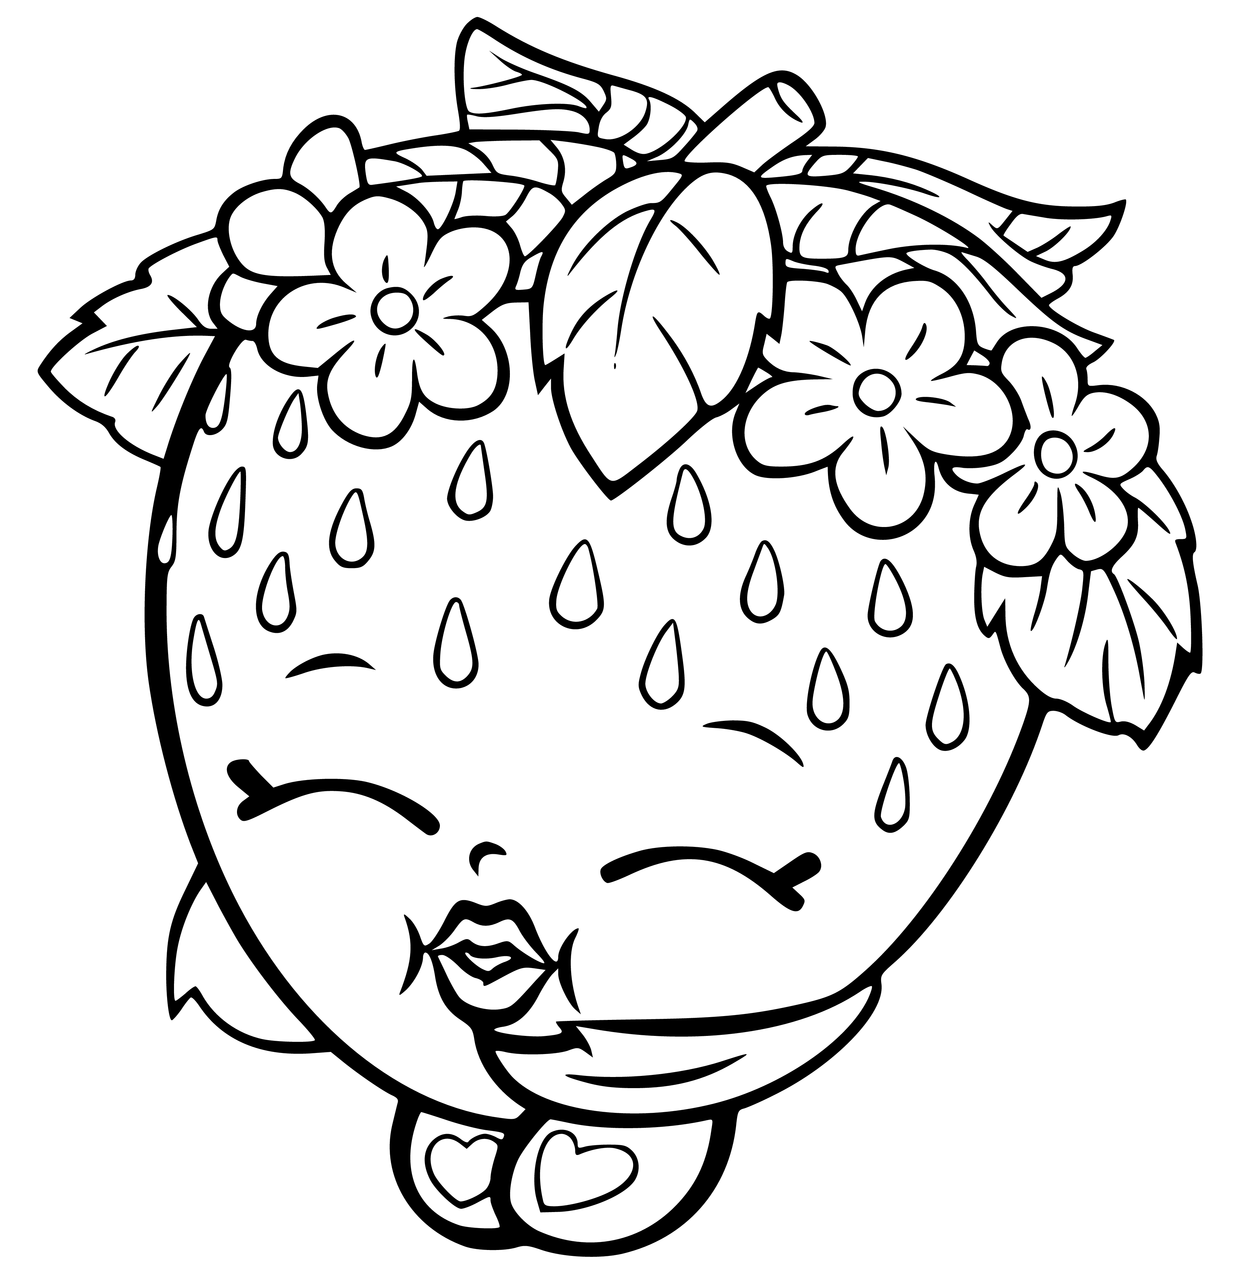 Shopkins coloring pages best coloring pages for kids for Photo to coloring page